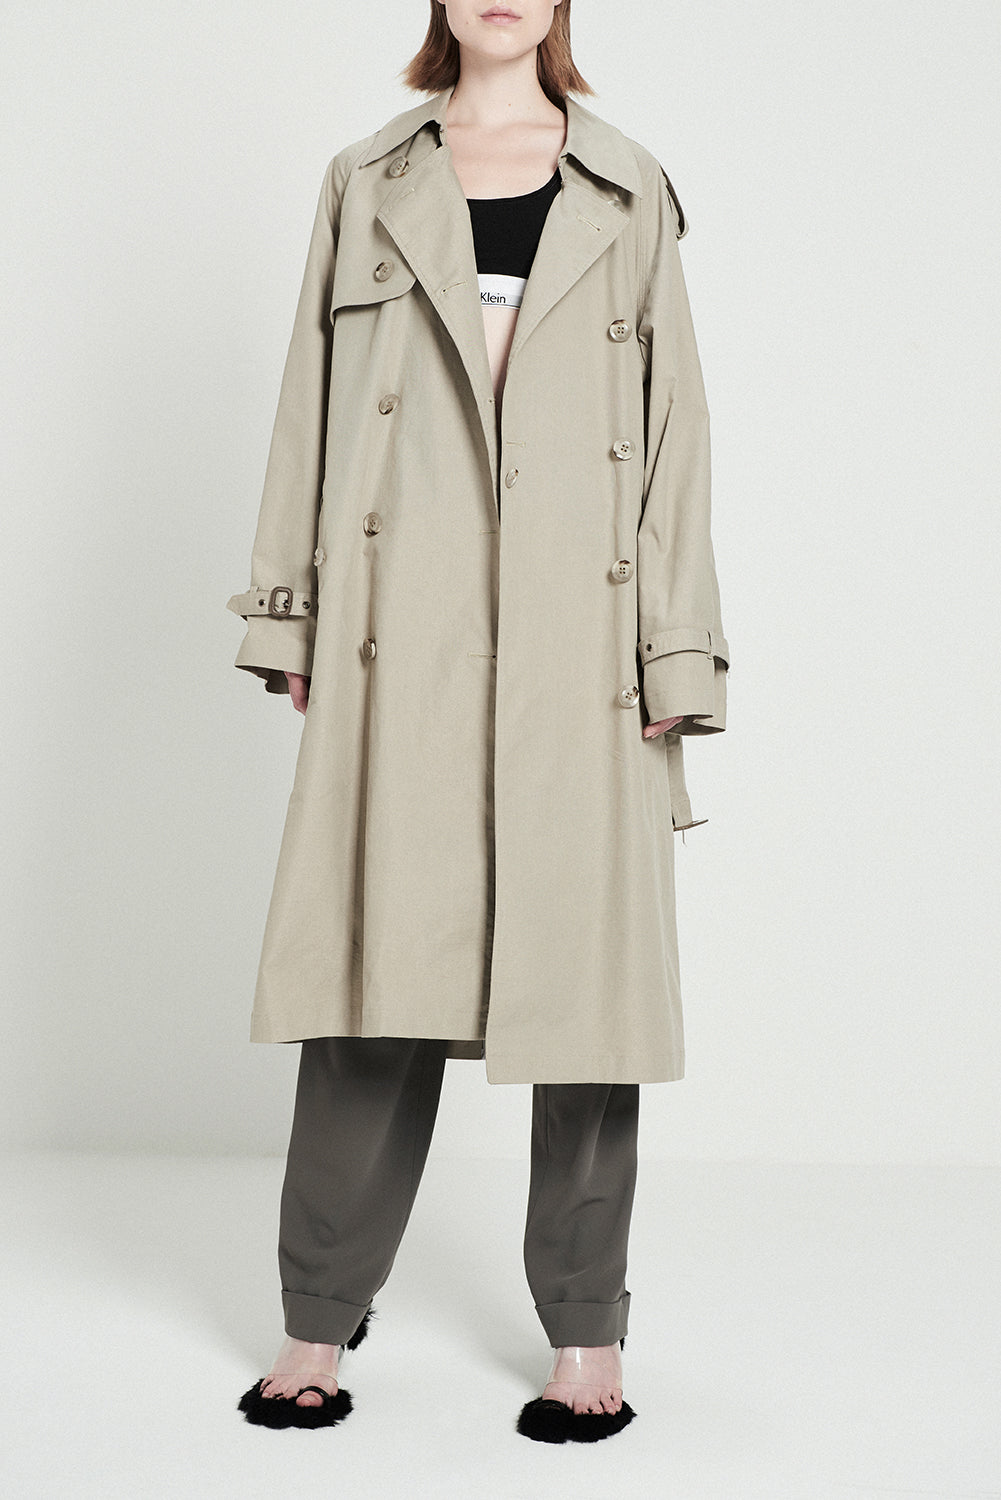 Khaki Trench Coat With Removeble Skirt Pleat - front row shop